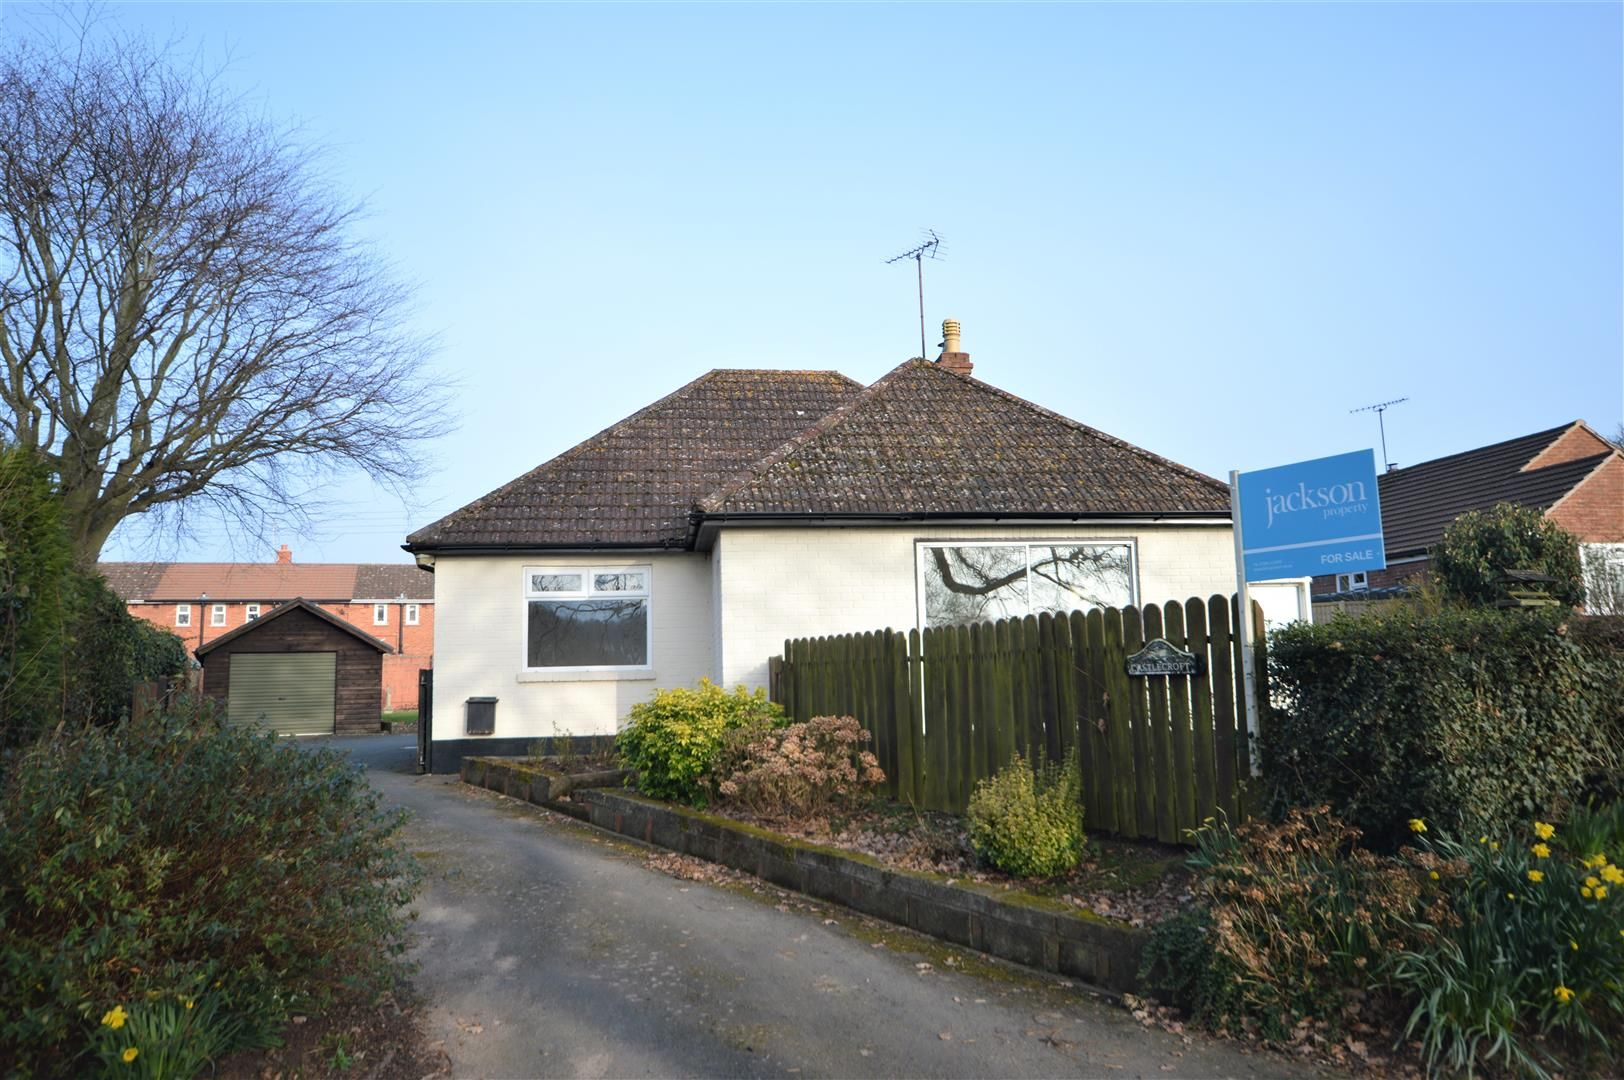 2 bed detached bungalow for sale in Weobley, HR4